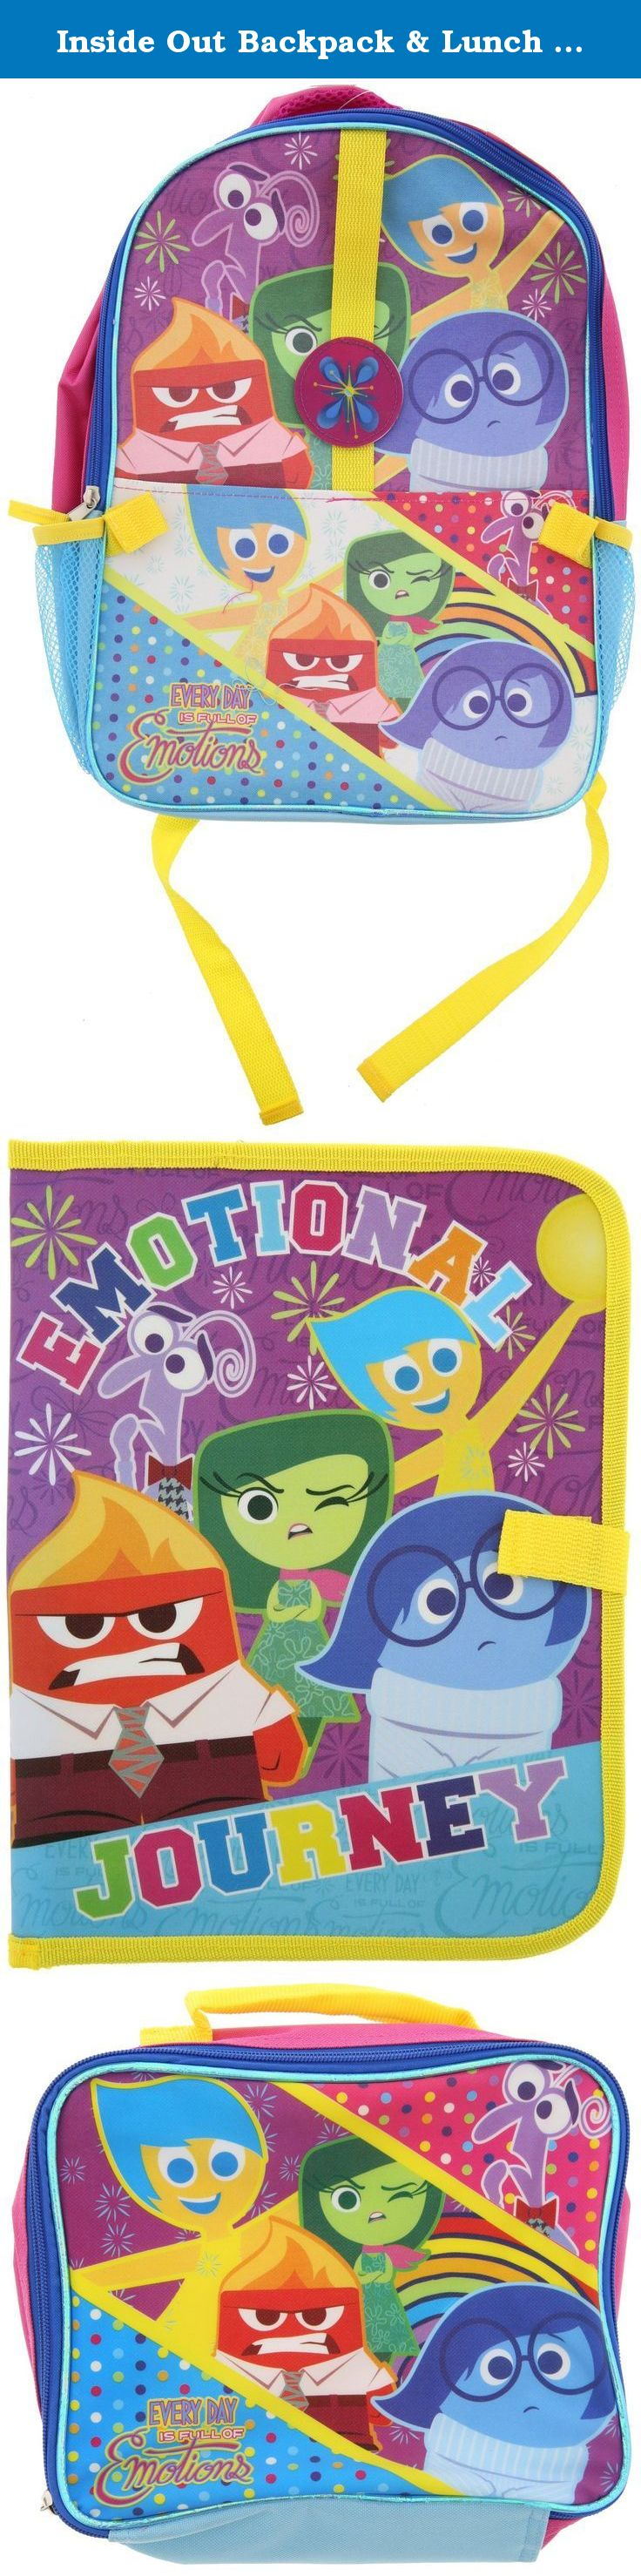 """Inside Out Backpack & Lunch Box Riley, Joy, Sadness, Anger, Fear and Disgust. Comes in 3 Pieces: Backpack, Lunch Bag and Folder. Backpack measures approximately 15""""H x 11.25""""W x 3.5""""D. Backpack: One zippered main compartment, One Front Pocket with Velcro Strap for the """"Bonus Folder"""" and Two Sided Mesh Pockets. Insulated Lunch Bag measures approximately 9""""W x 7""""H x 3""""W. Folder measures approximately 13""""H x 10""""W."""